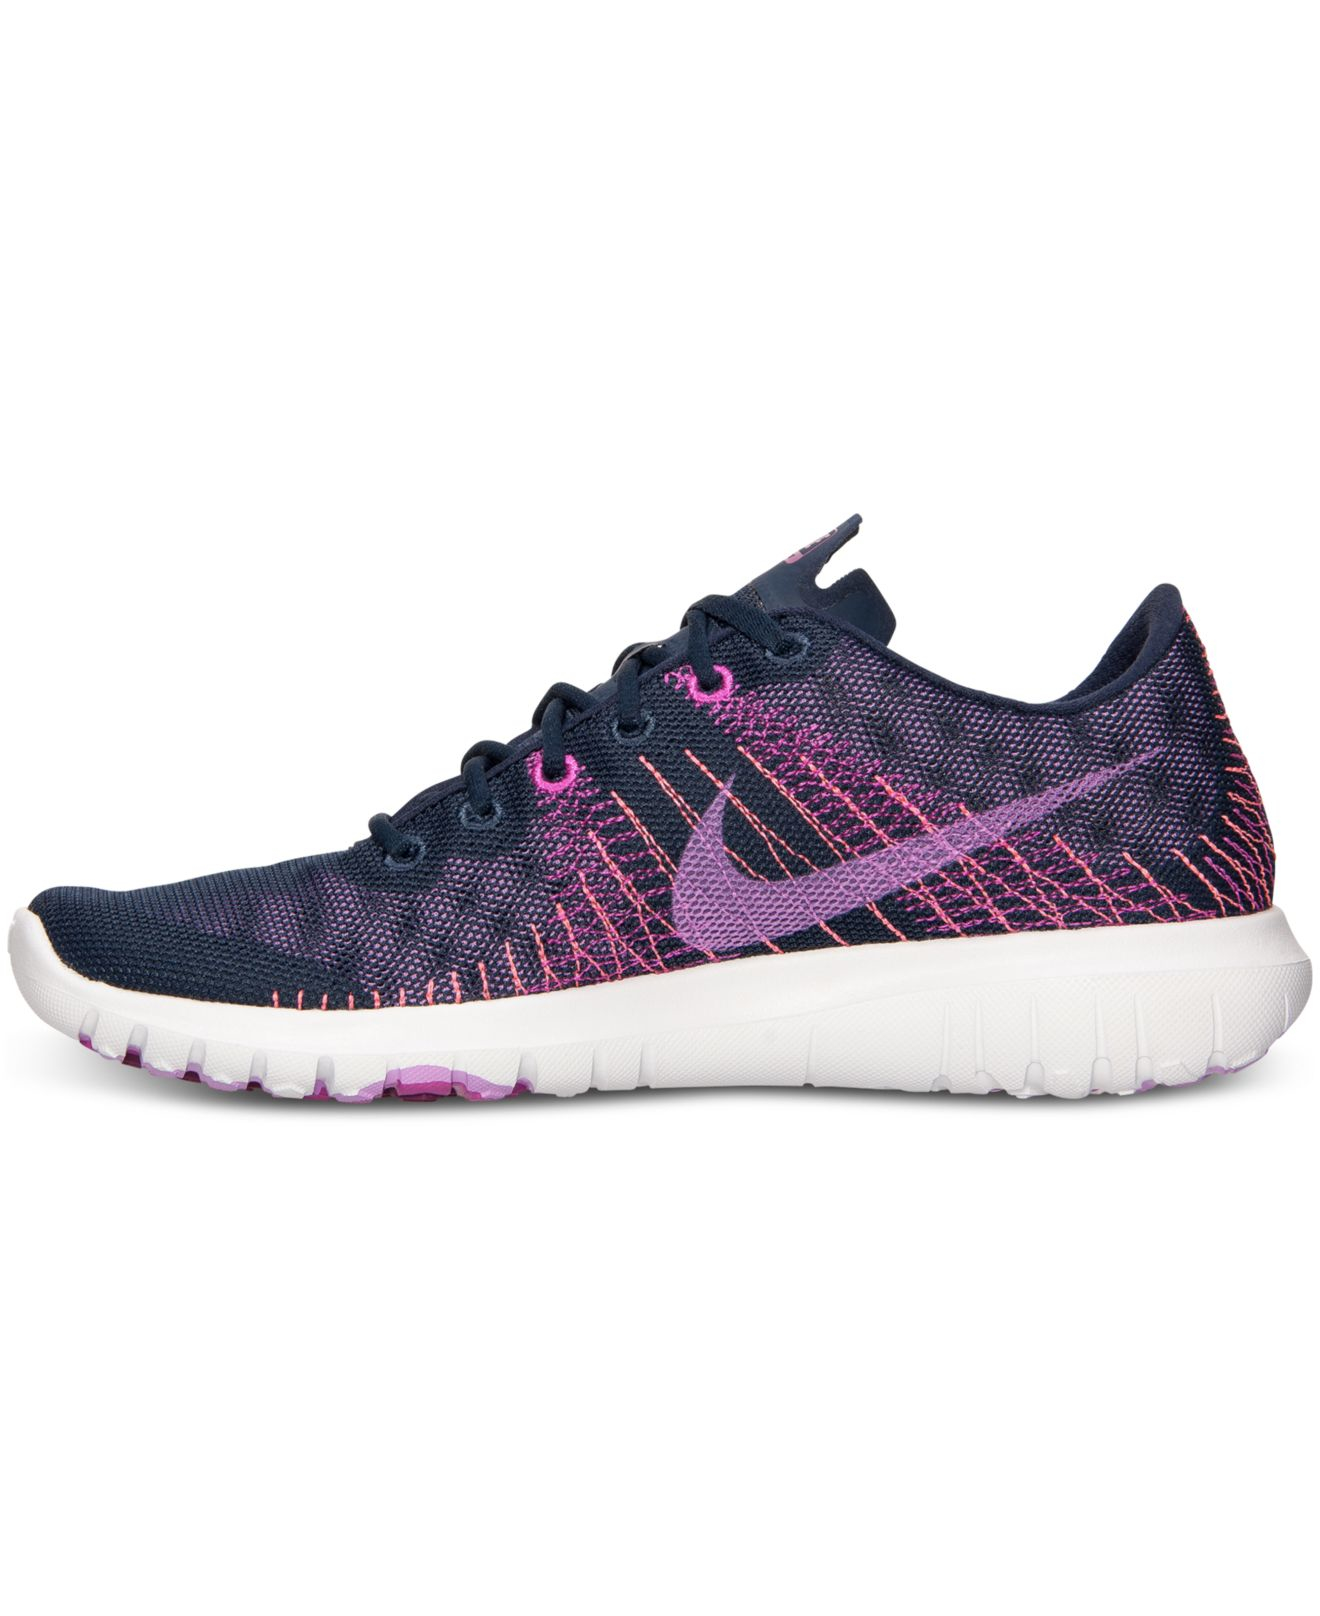 Lyst - Nike Women s Flex Fury Running Sneakers From Finish Line in ... 0a185c32b7